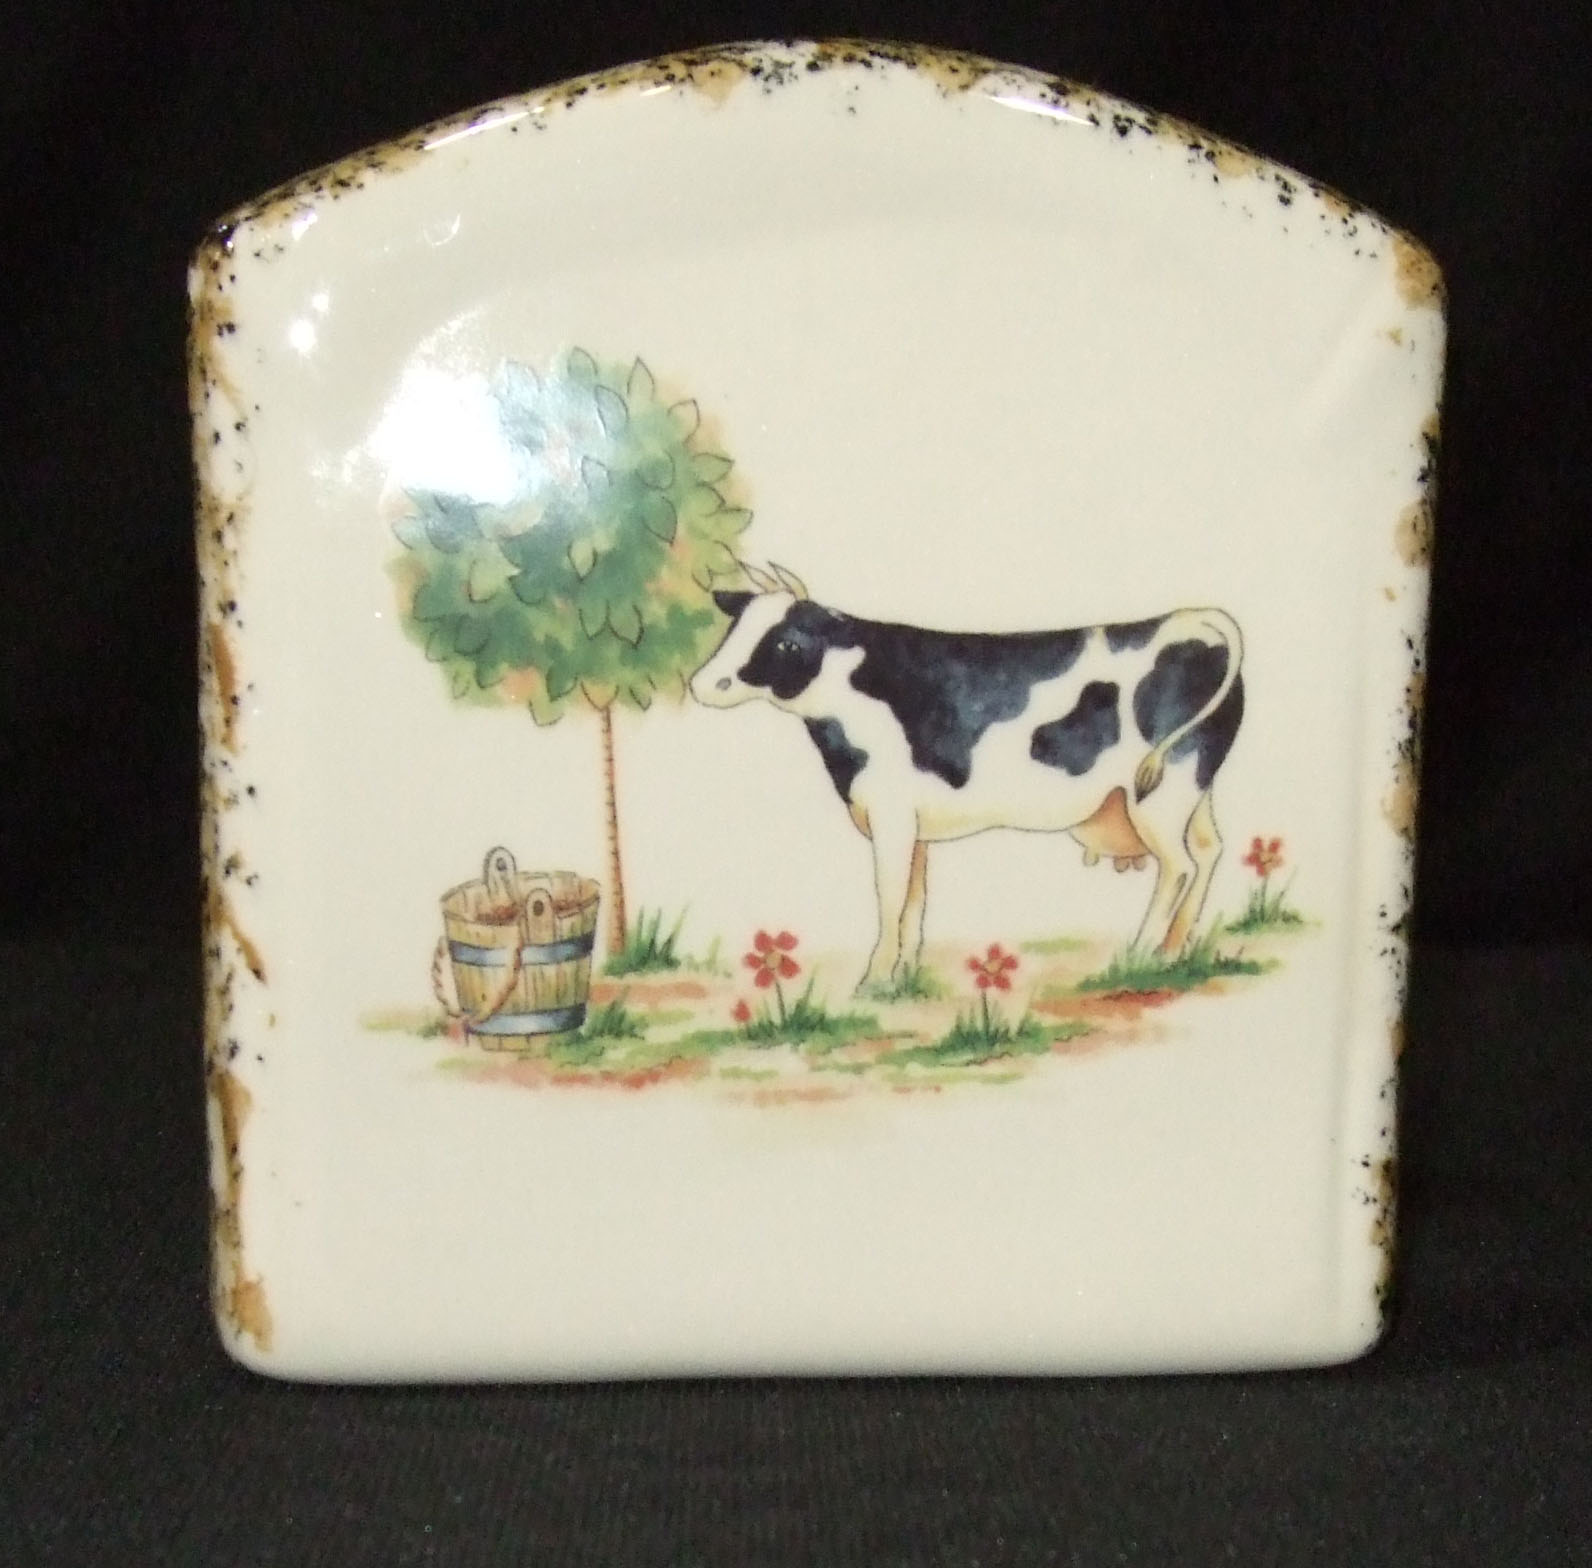 napkin holder, napkins, tableware, custom, pottery, ceramics, country, handmade, USA